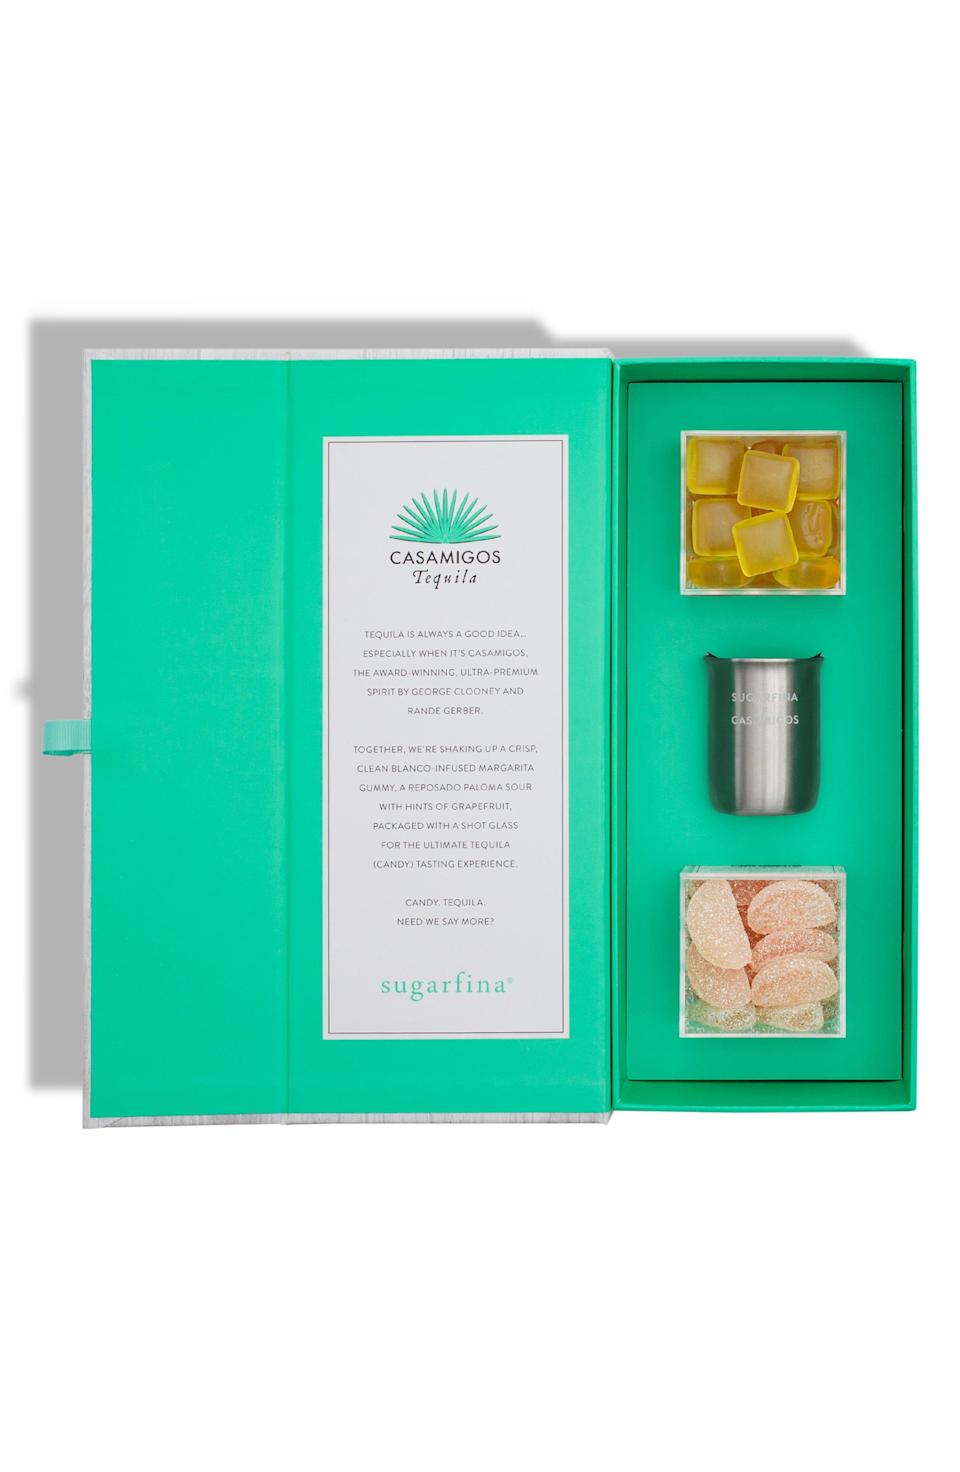 """<p><strong>SUGARFINA</strong></p><p>nordstrom.com</p><p><strong>$28.00</strong></p><p><a href=""""https://go.redirectingat.com?id=74968X1596630&url=https%3A%2F%2Fshop.nordstrom.com%2Fs%2Fsugarfina-3-piece-you-had-me-at-tequila-candy-bento-box%2F5045479&sref=https%3A%2F%2Fwww.cosmopolitan.com%2Flifestyle%2Fg32815611%2Fcare-package-ideas%2F"""" rel=""""nofollow noopener"""" target=""""_blank"""" data-ylk=""""slk:Shop Now"""" class=""""link rapid-noclick-resp"""">Shop Now</a></p><p>Tequila, but make it candy. These margarita- and paloma-flavored sweets will fuel her obsession with that agave juice. </p>"""